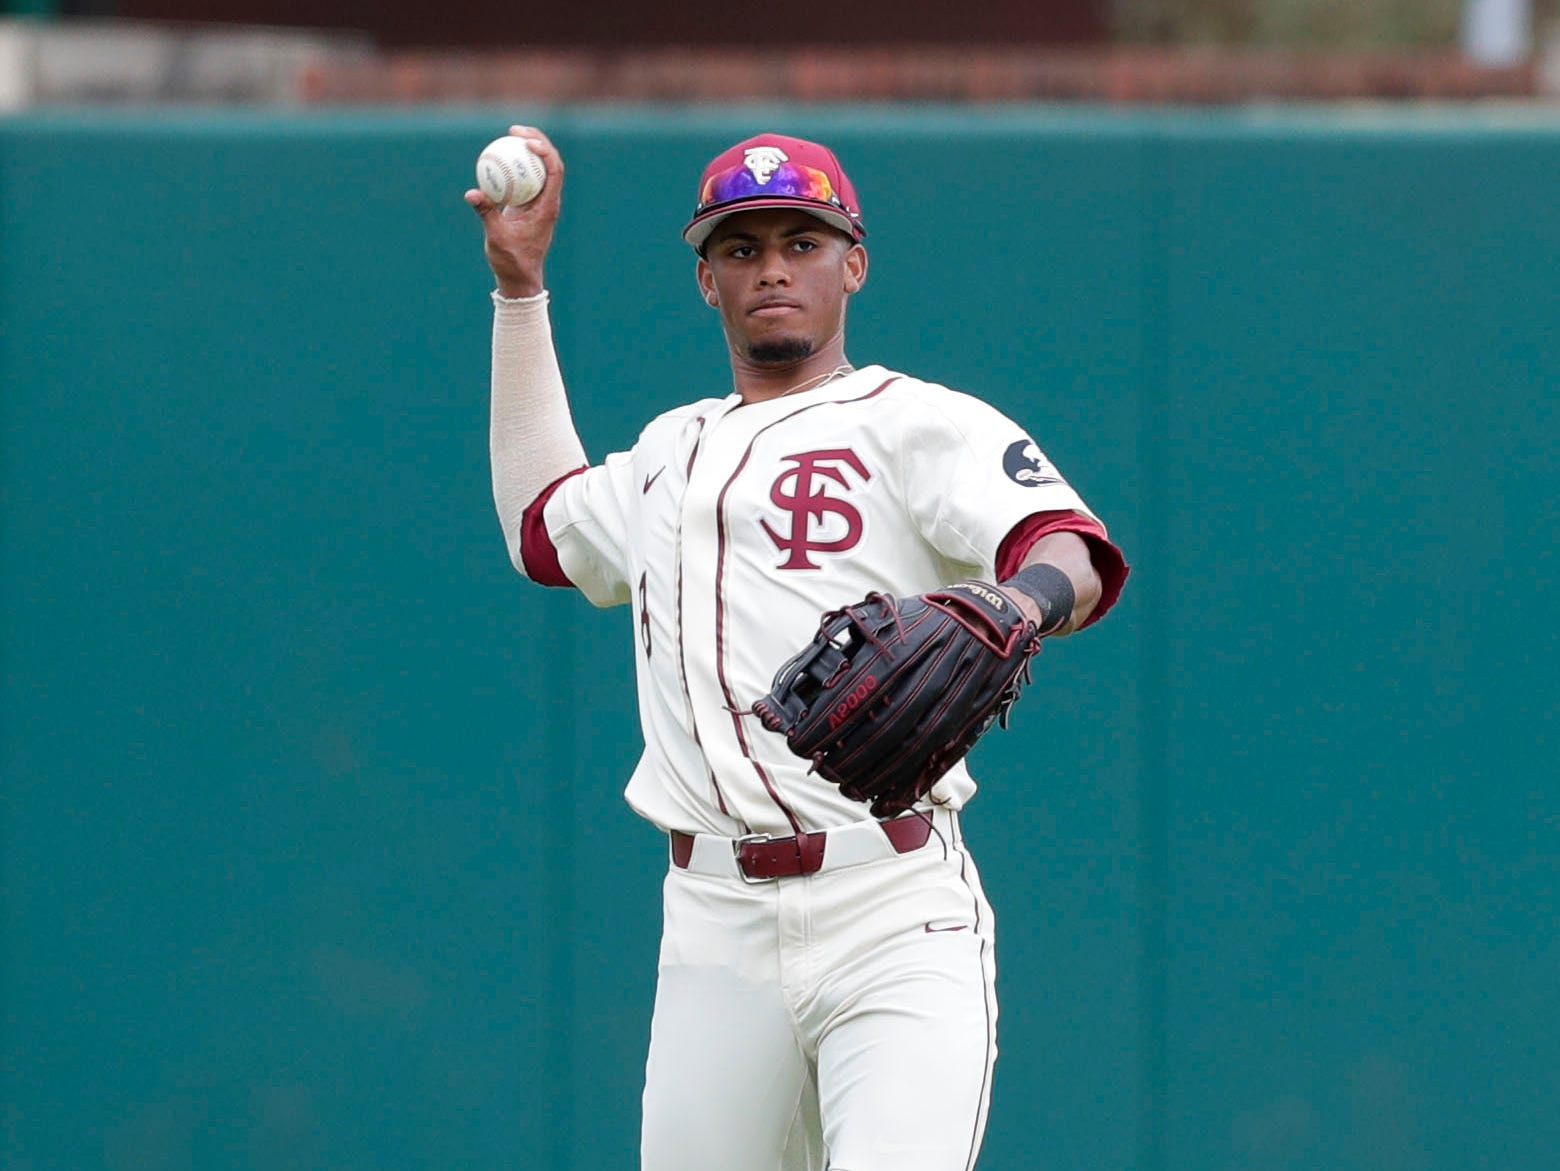 Florida State Seminoles outfielder/right handed Pitcher J.C. Flowers (8) throws the ball to the infield as the Florida State Seminoles host the Maine Black Bears for the second game of the series, Saturday Feb. 16, 2019.